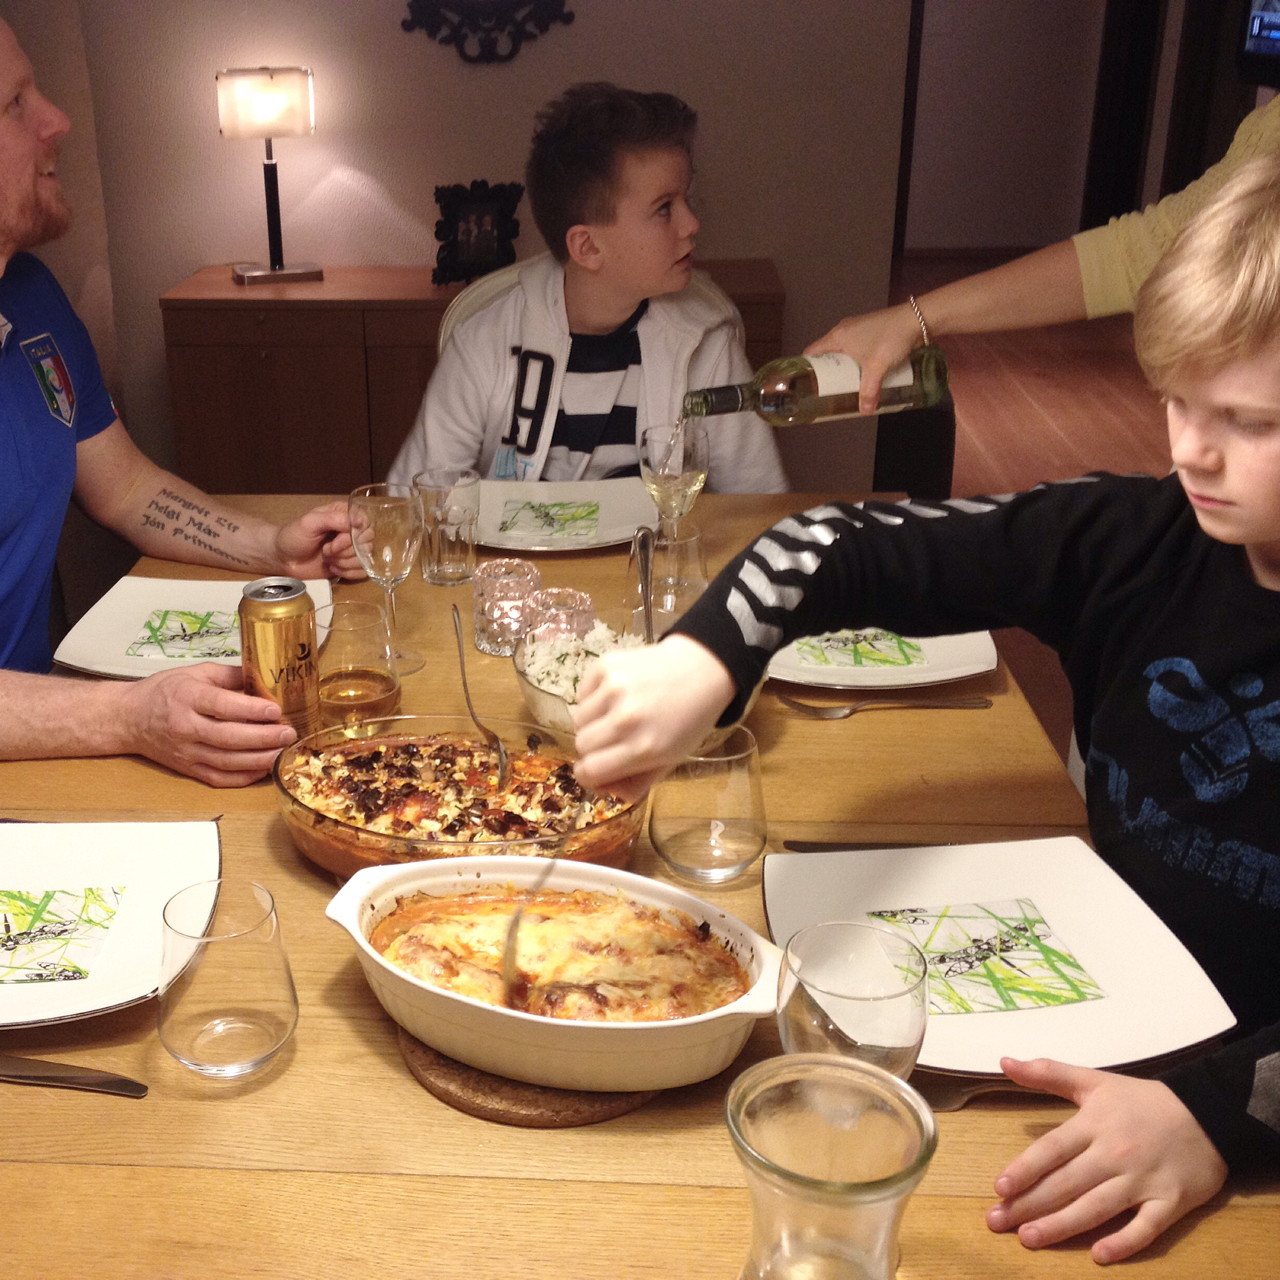 """Monday night is fish night. Kjartan just made it home from the Manaberg OF-42, the 42-year-old fishing trawler he spends half his year on, """"one [month] on, one off""""; now in 18-metre swells off the Norwegian coast. He's brought home his personal cut of the cod, prime slabs of þorskur hnakkur - the saddle of the fish - the fleshiest part behind the head. Tonight, baked with dates, tomato, cashew and bechamel. On his left hand, a tattoo of his children's names; in his right, a can of Viking Gold."""